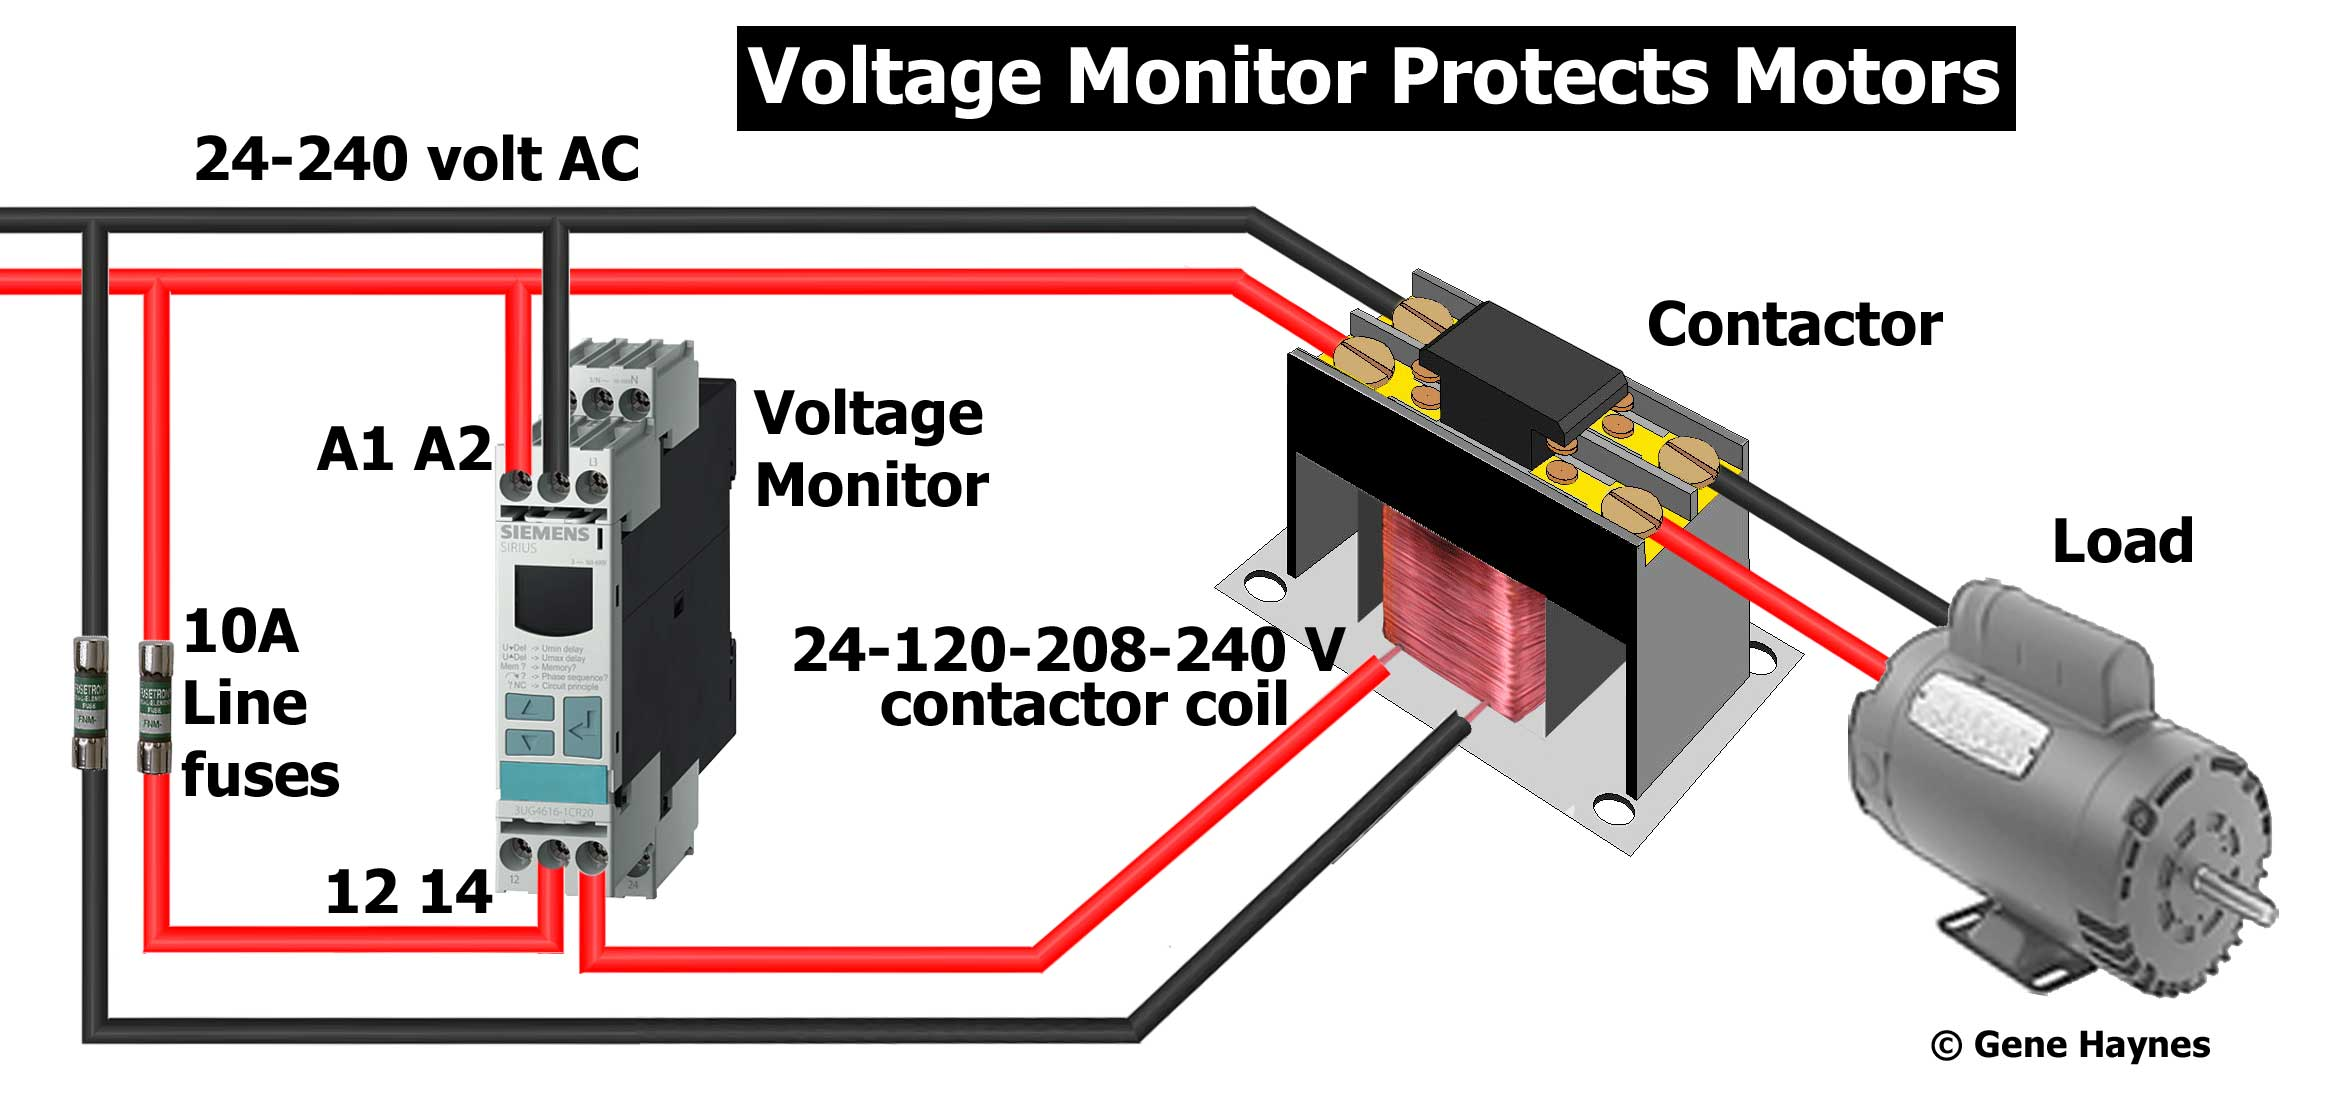 Larger image, Siemens Single-phase Voltage monitor. Rated 24-240 volt AC